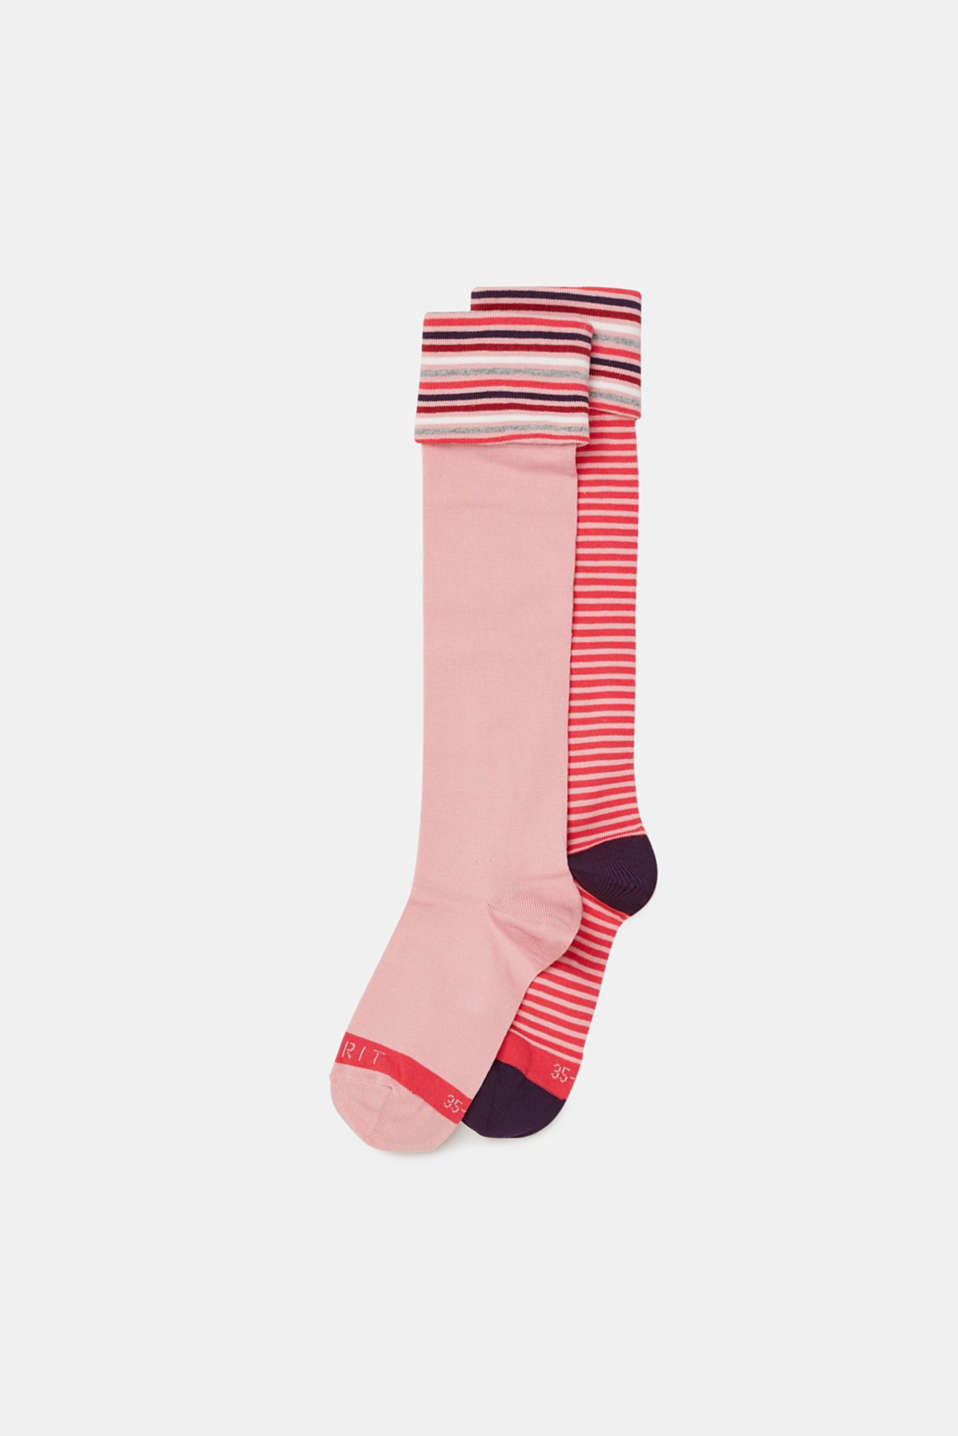 Esprit - In a pack of two: Knee-high socks with colourful stripes